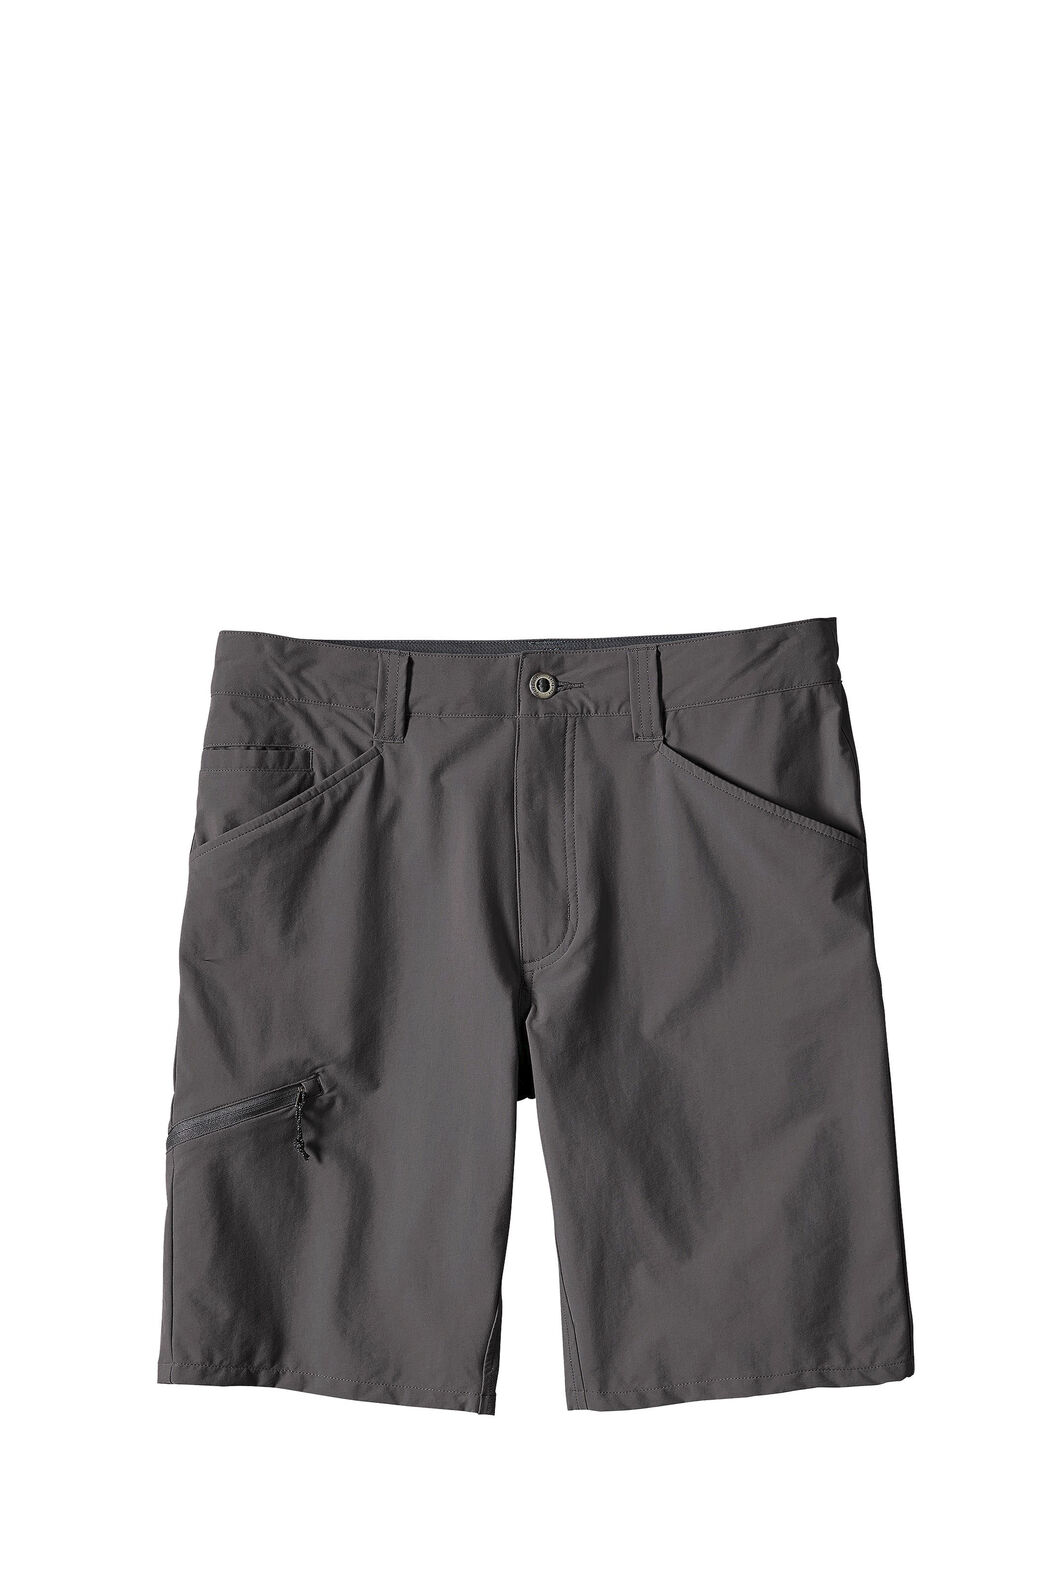 Patagonia Men's Quandary Shorts Forge, FORGE GREY, hi-res